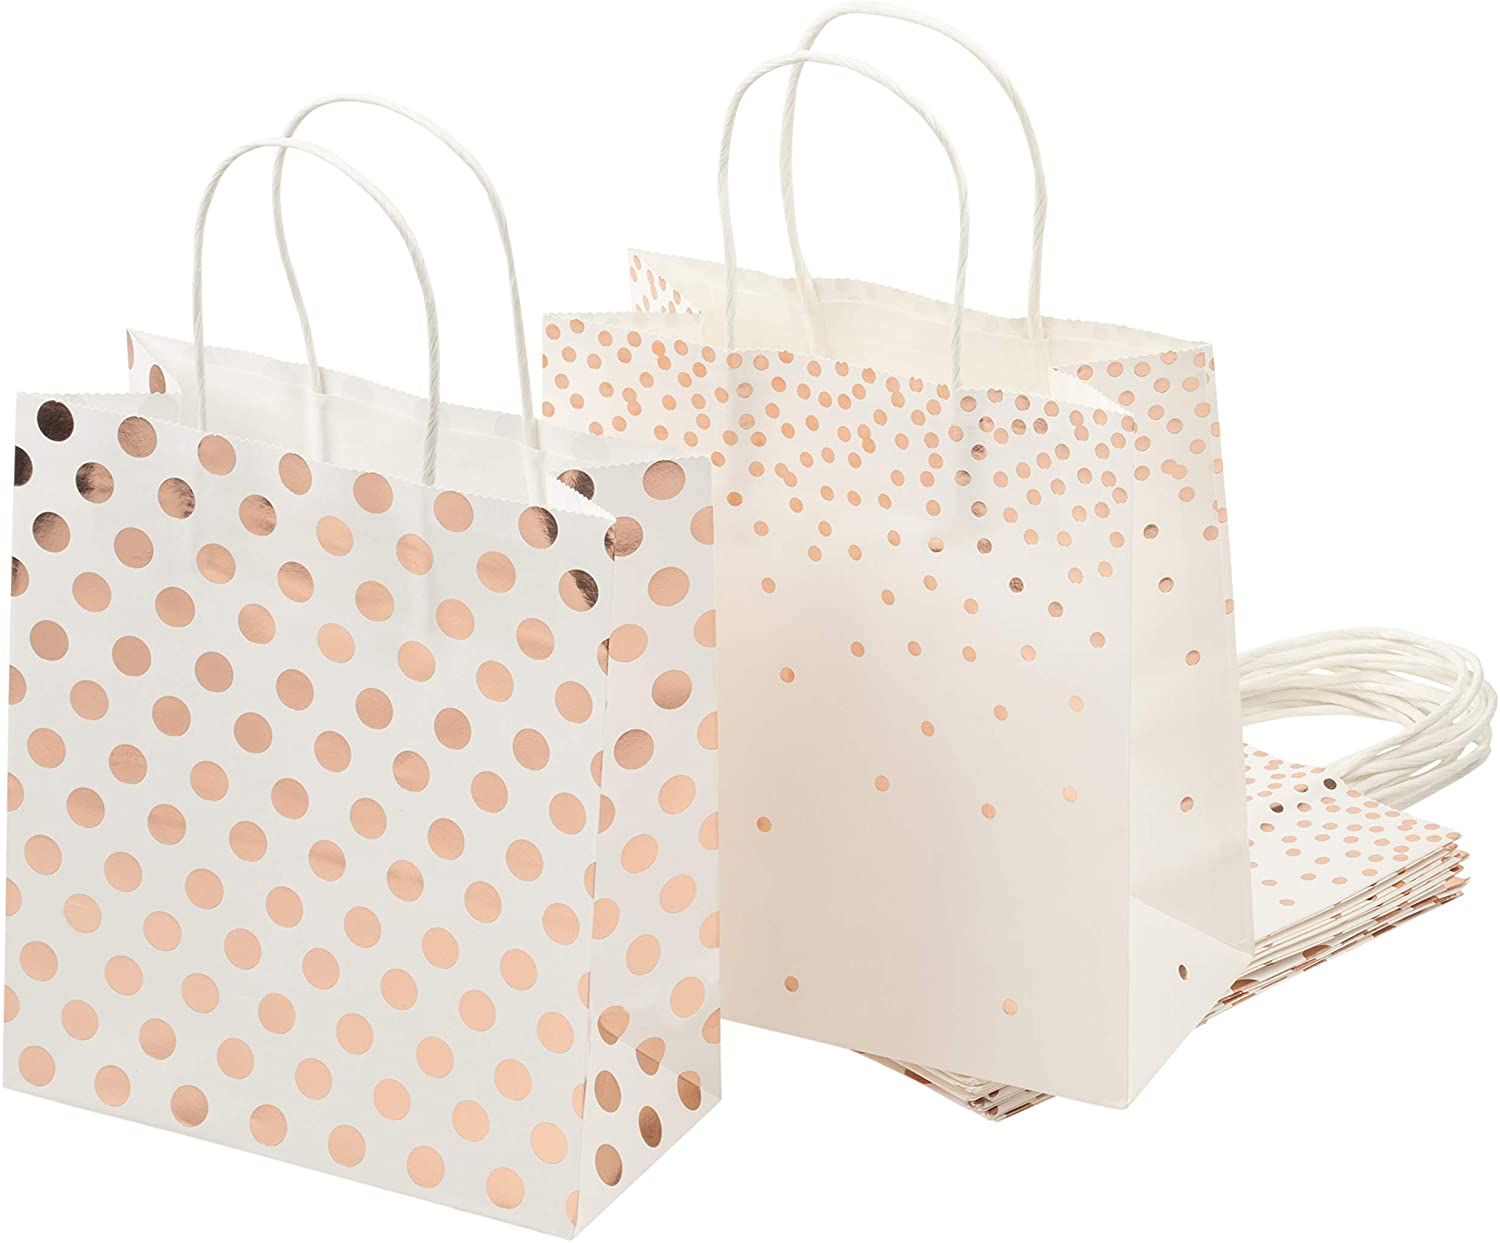 Foil Gift Bags – 16-Pack Treat Bags with Handles, Paper Goodie Bags for Retail, Gifts, Party Favors, 2 Rose Gold Foil Designs, Medium, 9 x 8 x 4 Inches